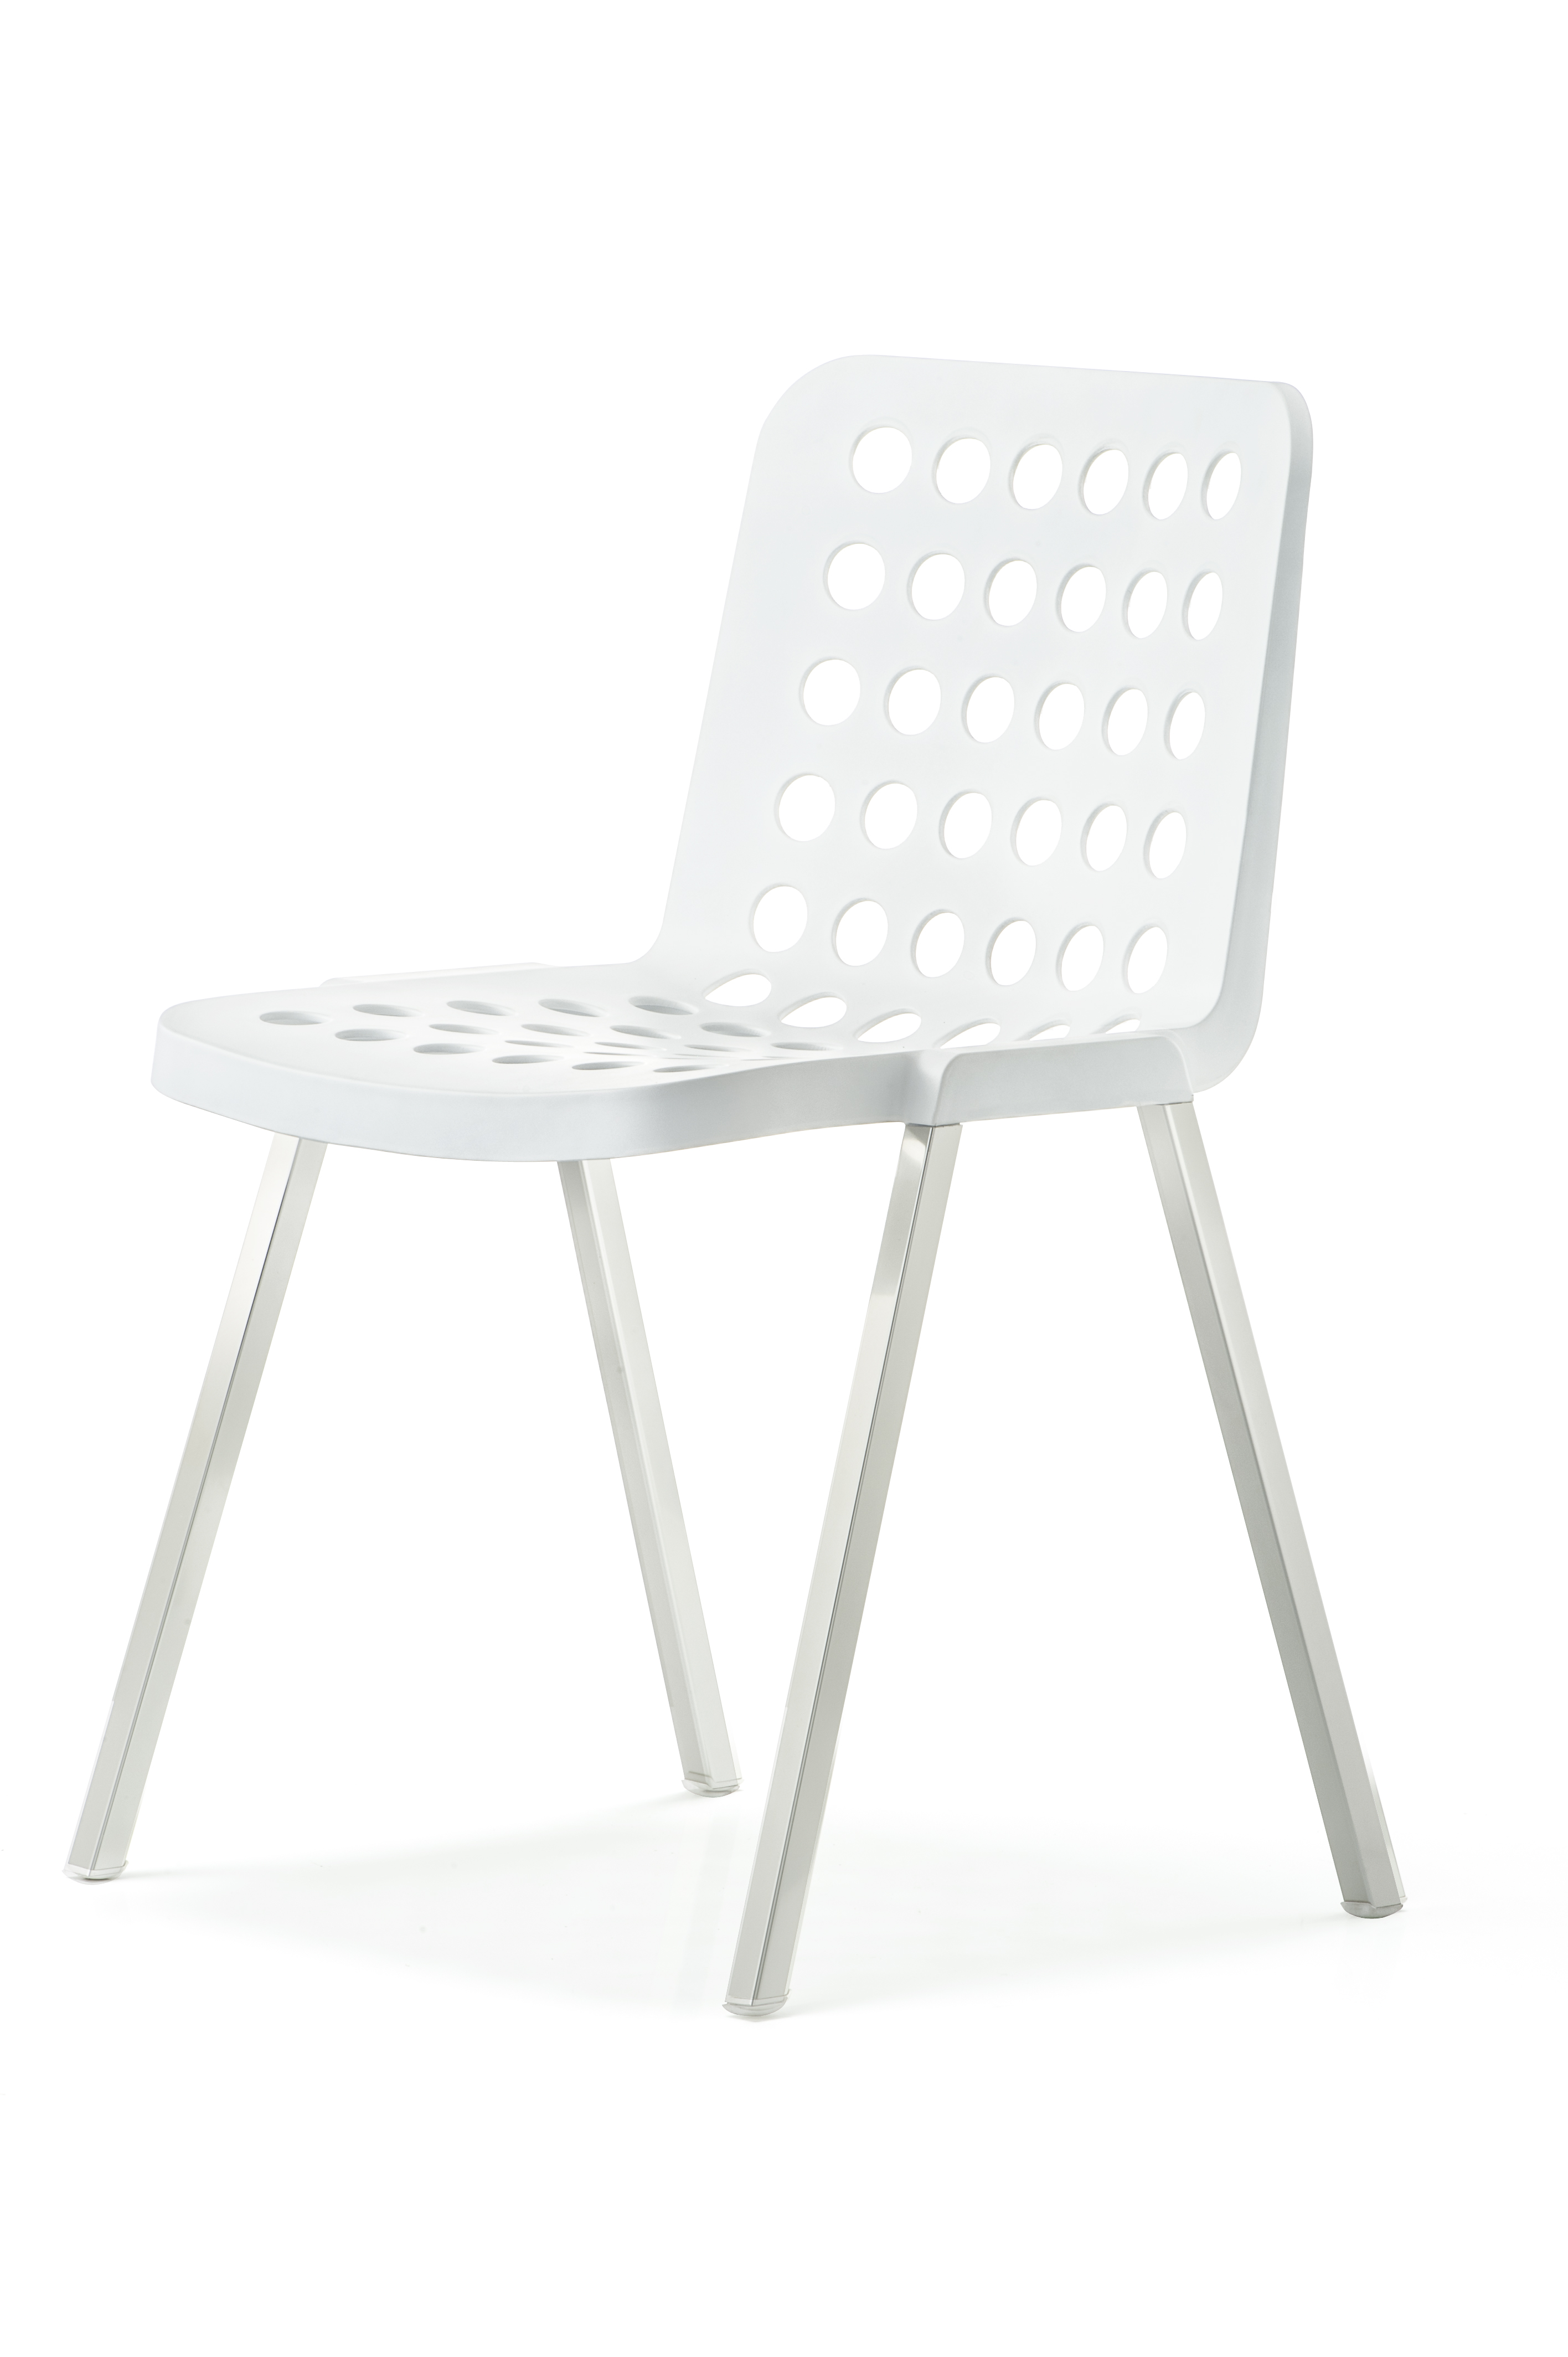 Koi Booki Modern Stack Chair